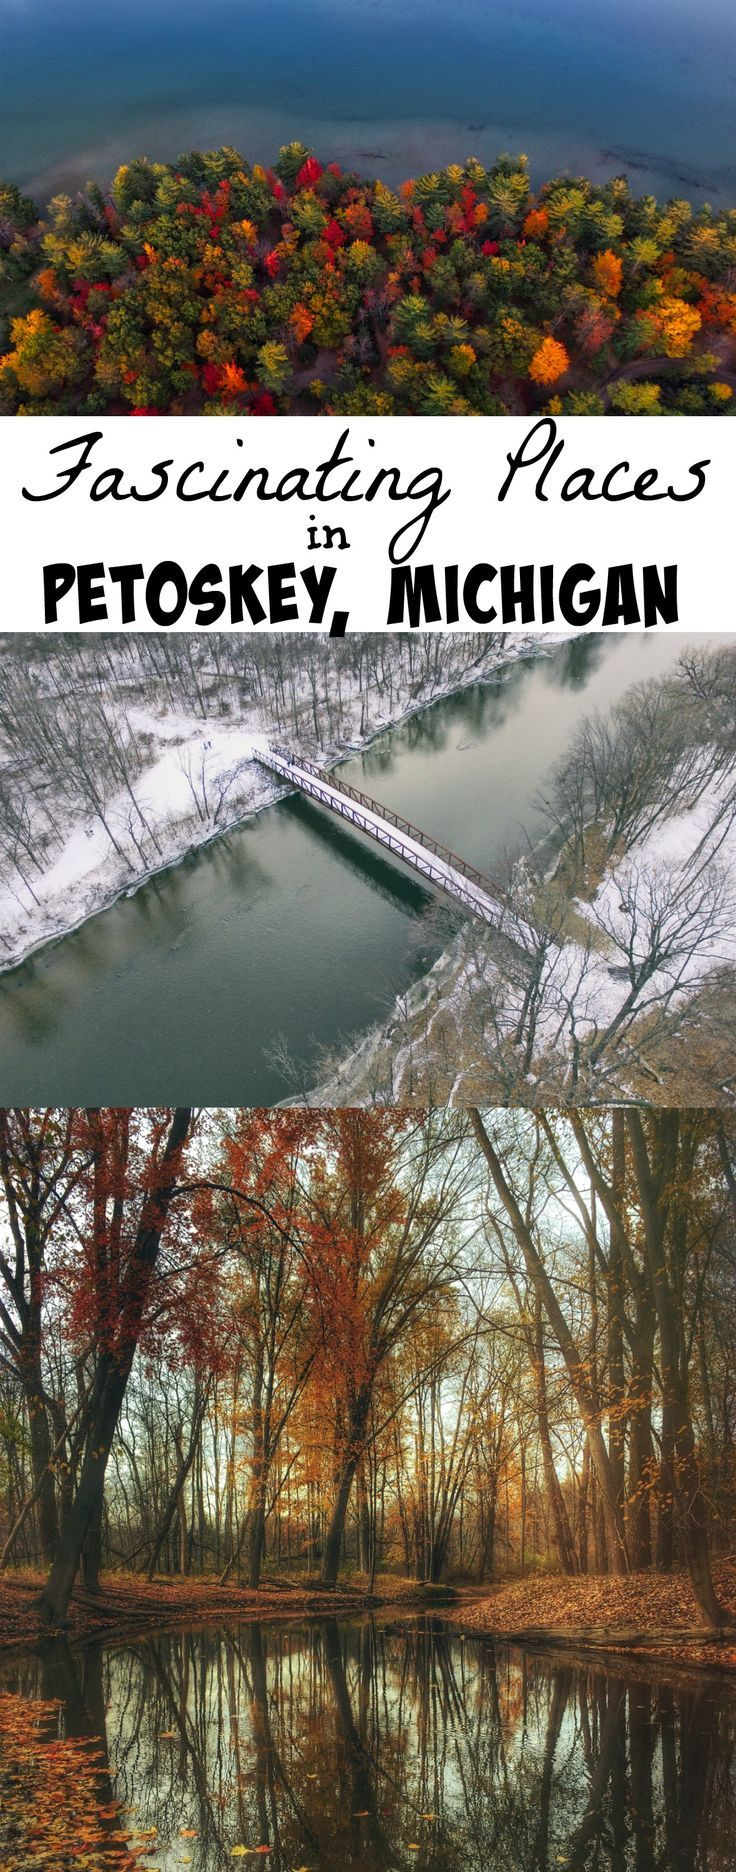 I thought the only thing to do in Petoskey, Michigan was go to the beach and look for Petoskey Stones but you wouldn't believe the things to do in Michigan that she lists! A museum of dolls dressed like nuns, an art cafe, a rustic lodge and so much more! Great Midwest road trip! @PetoskeyArea #SIMTravel